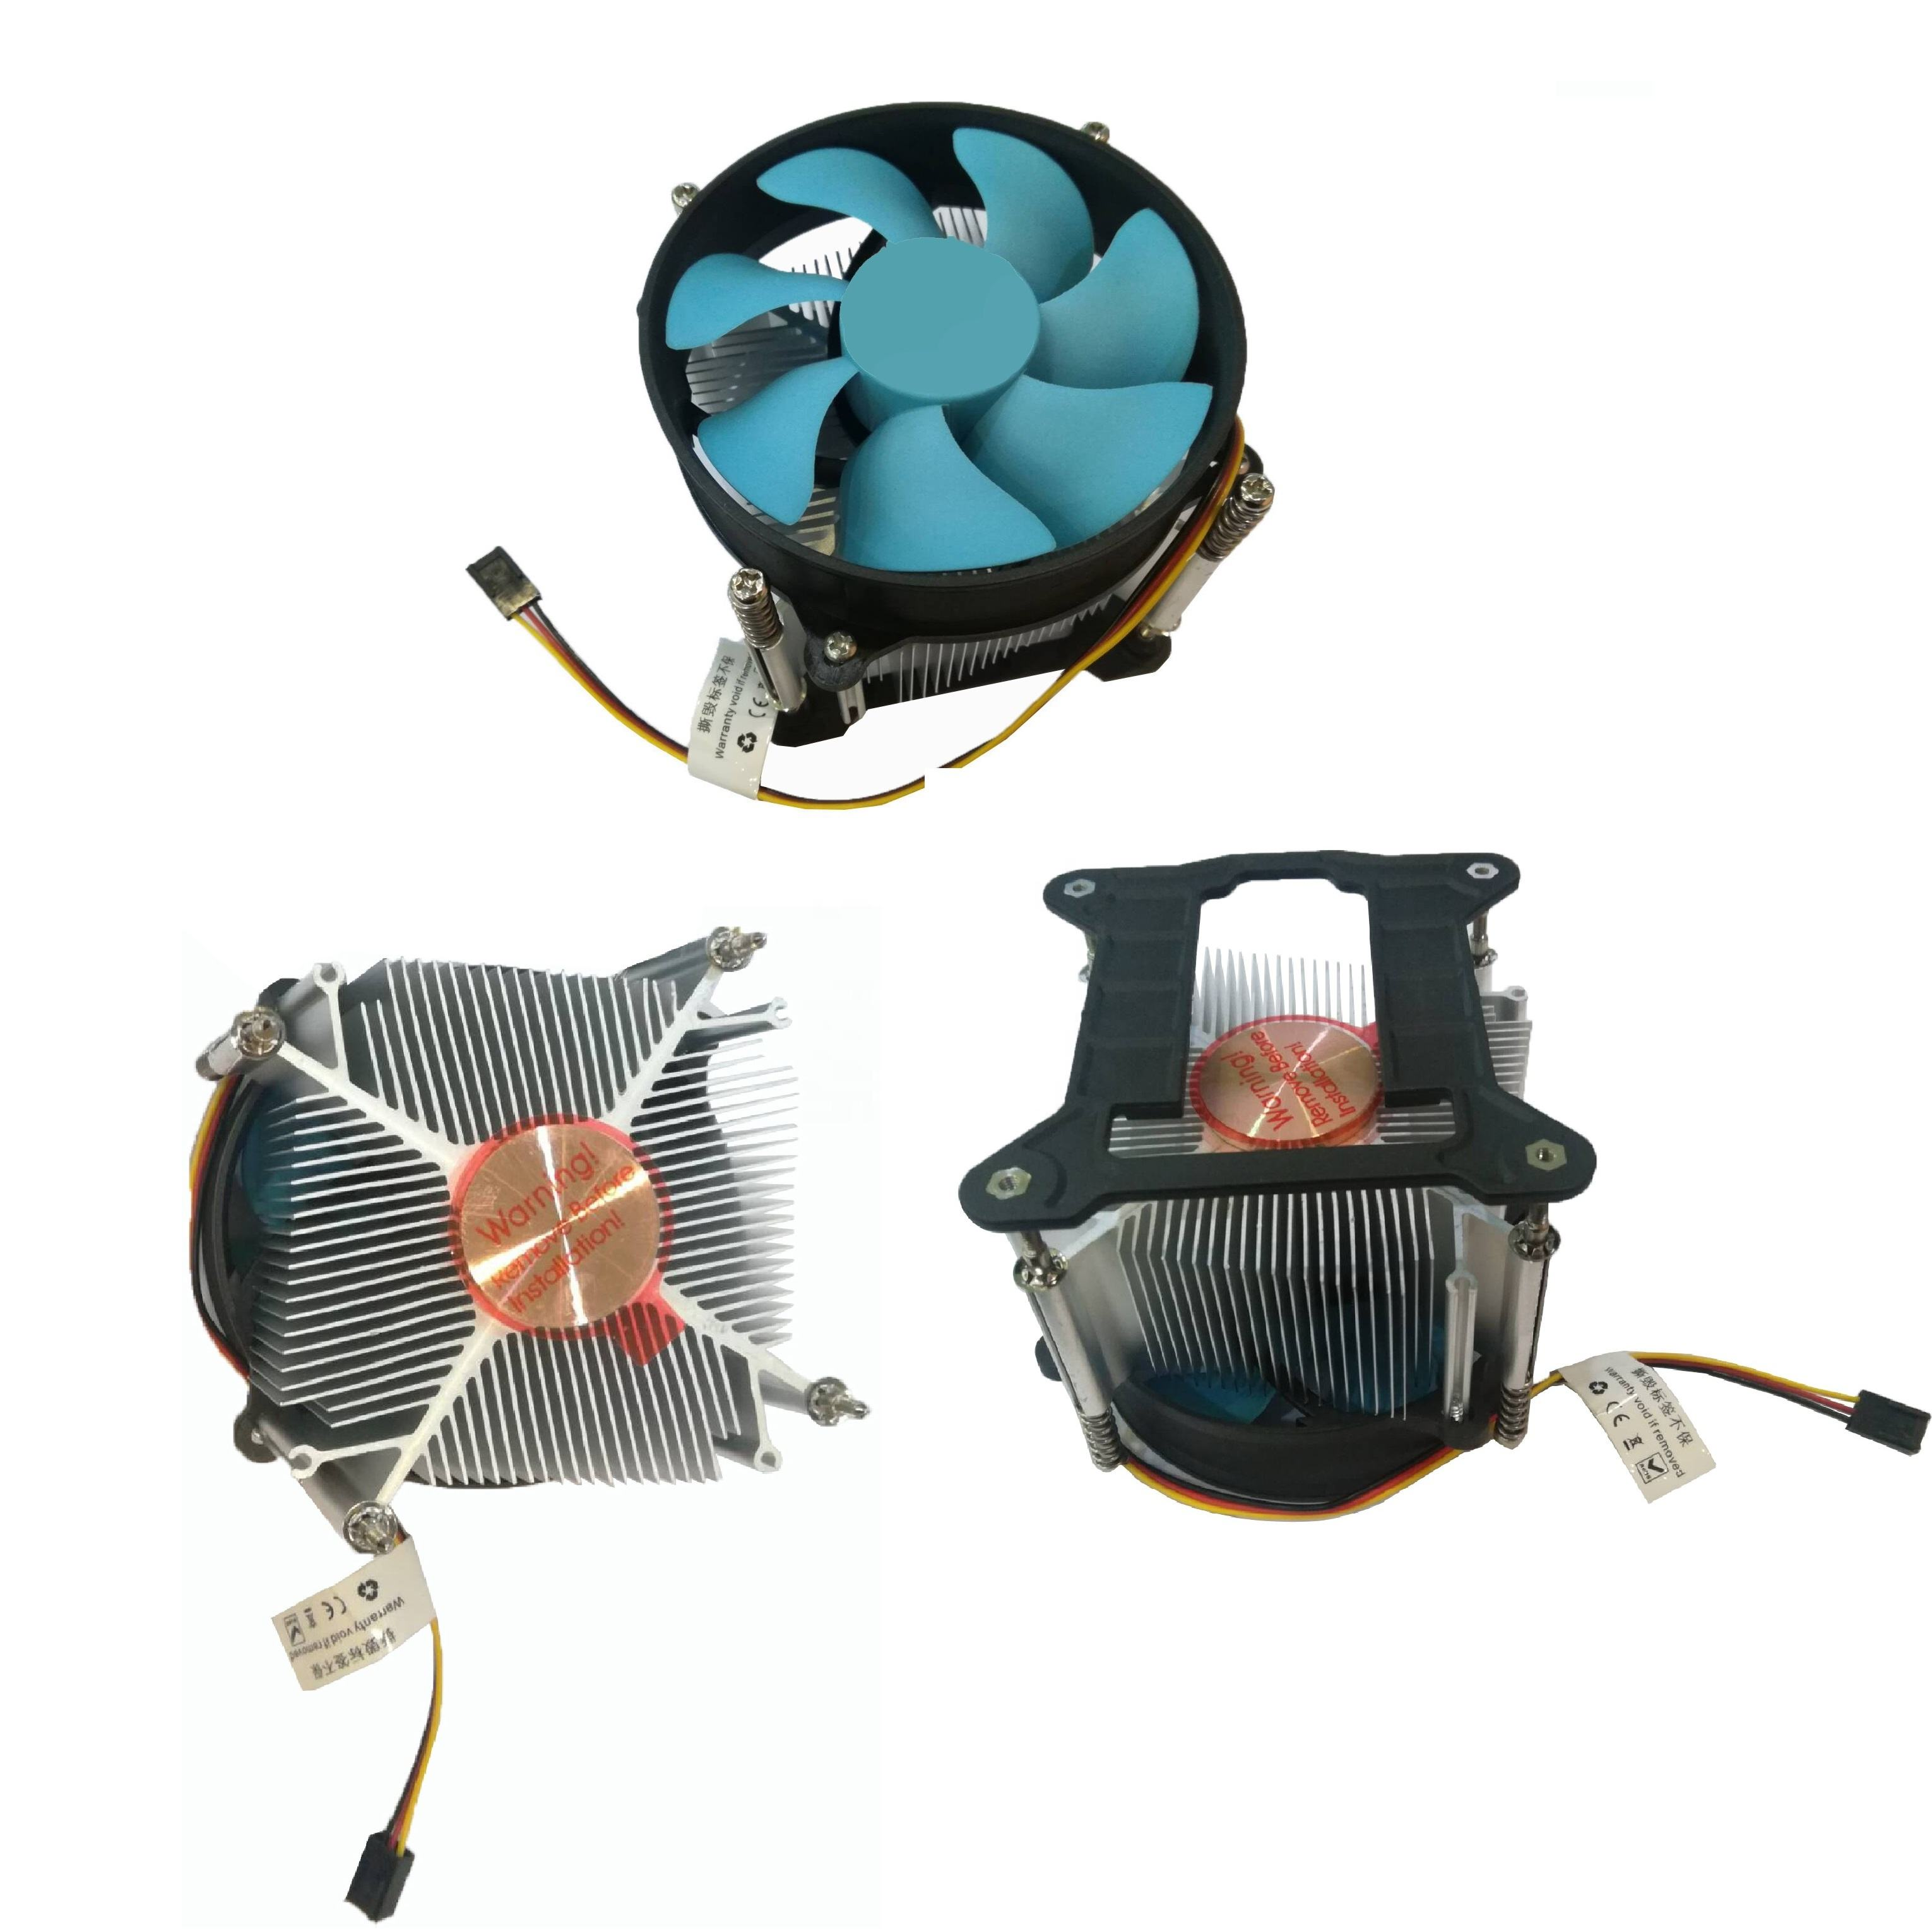 High quality horizontal Cpu cooler for 1150,1151,1155,1156,1157 115X heat sink w/ 3-4 Pins with/without speed adjustment